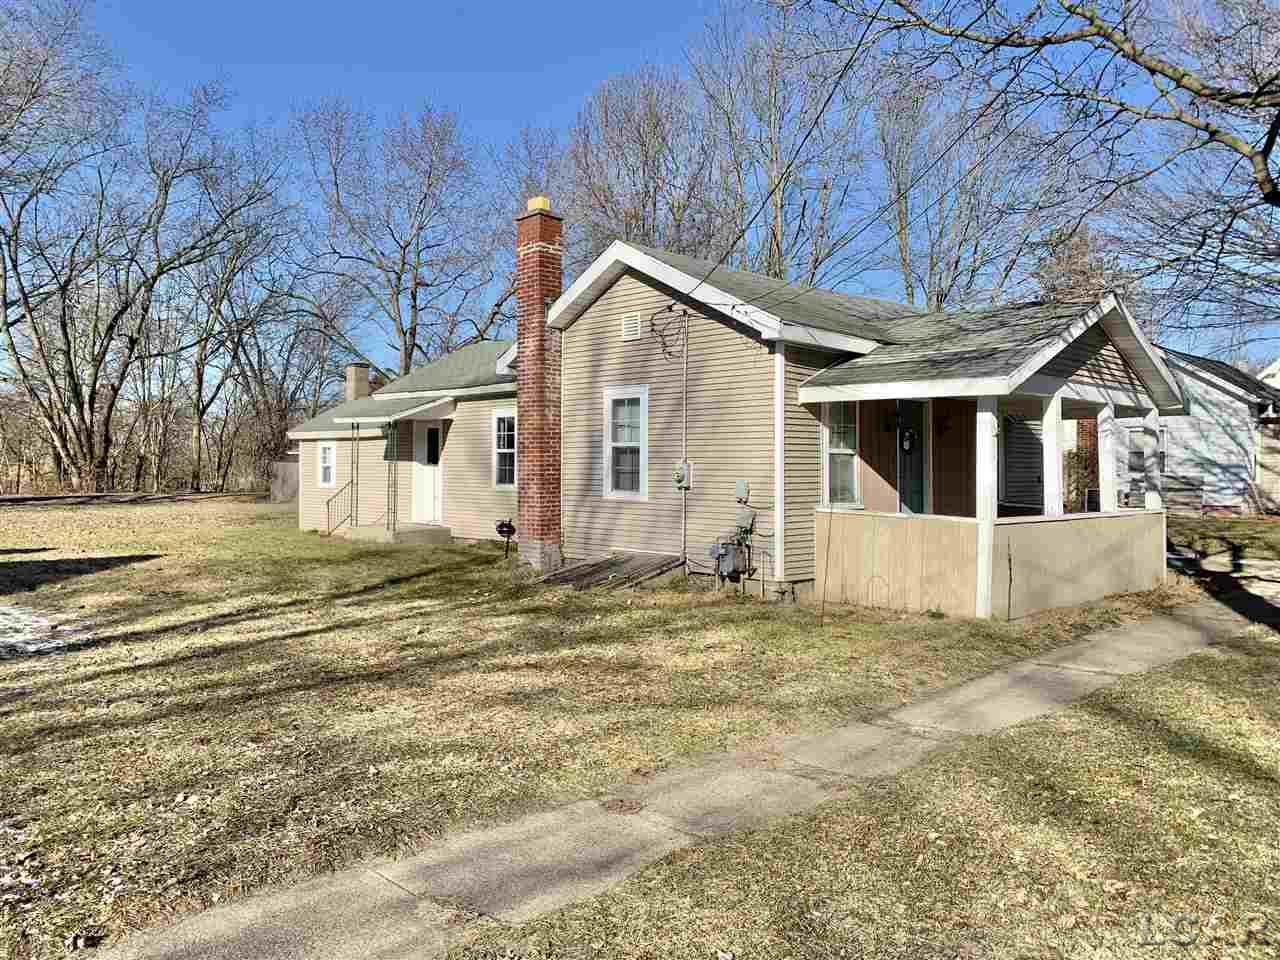 424 Buffalo, Morenci, Michigan 49256, 3 Bedrooms Bedrooms, 6 Rooms Rooms,1 BathroomBathrooms,Residential,For Sale,Buffalo,50032783